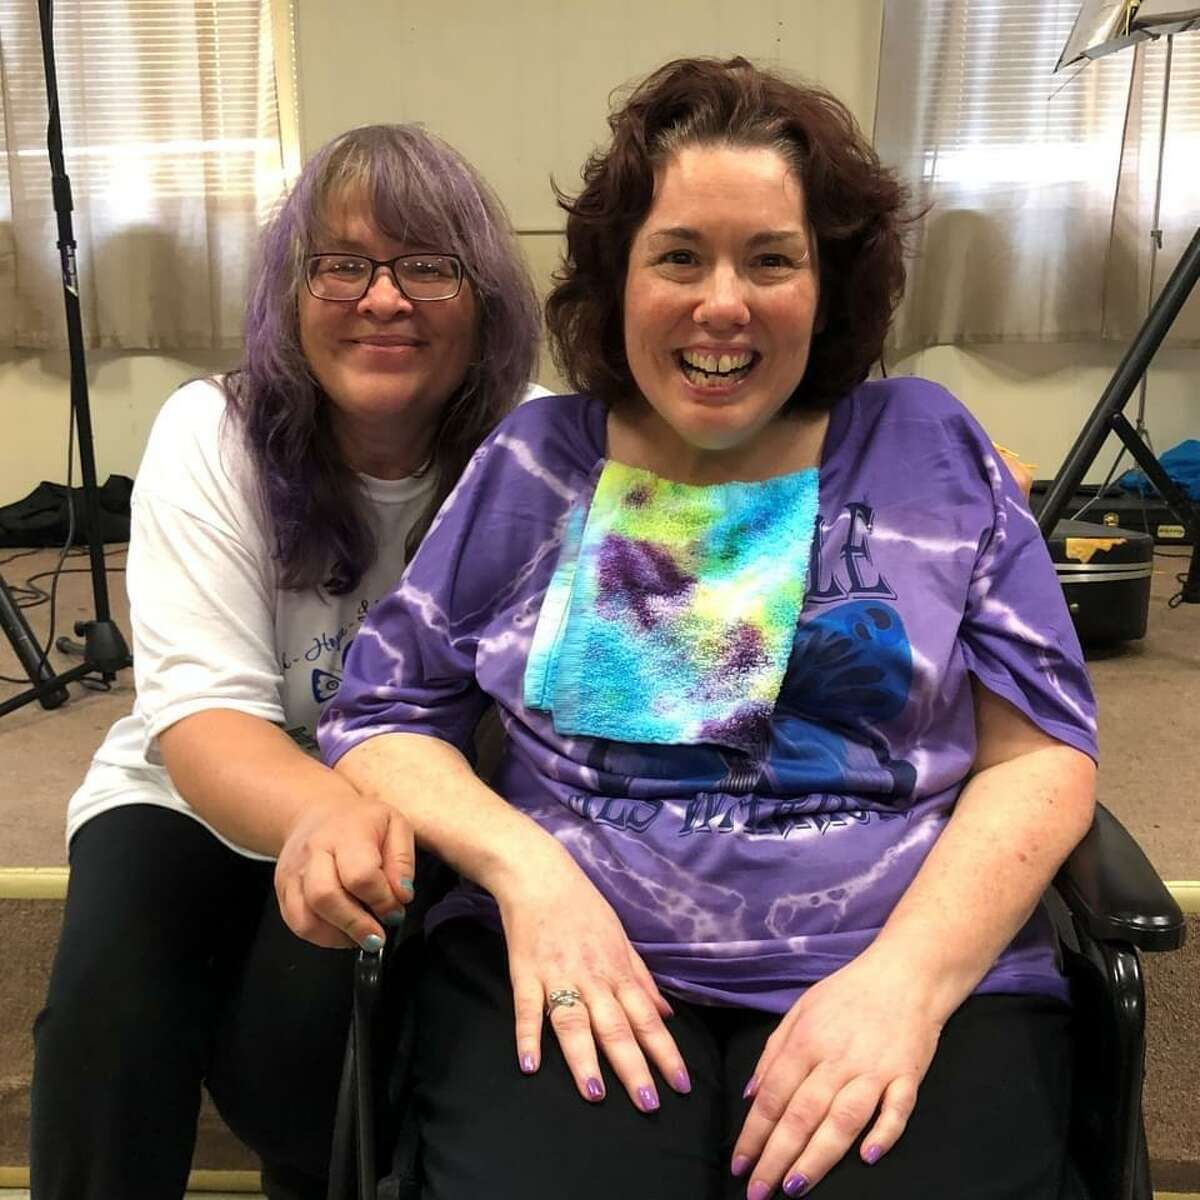 A fundraiser to buy a new van for Richelle Roman Lovato of Torrington, who has ALS, was held July 30 at the Eagle Club. Lovato, right, is pictured with childhood friend Virginia Cianciolo, who organized the event.